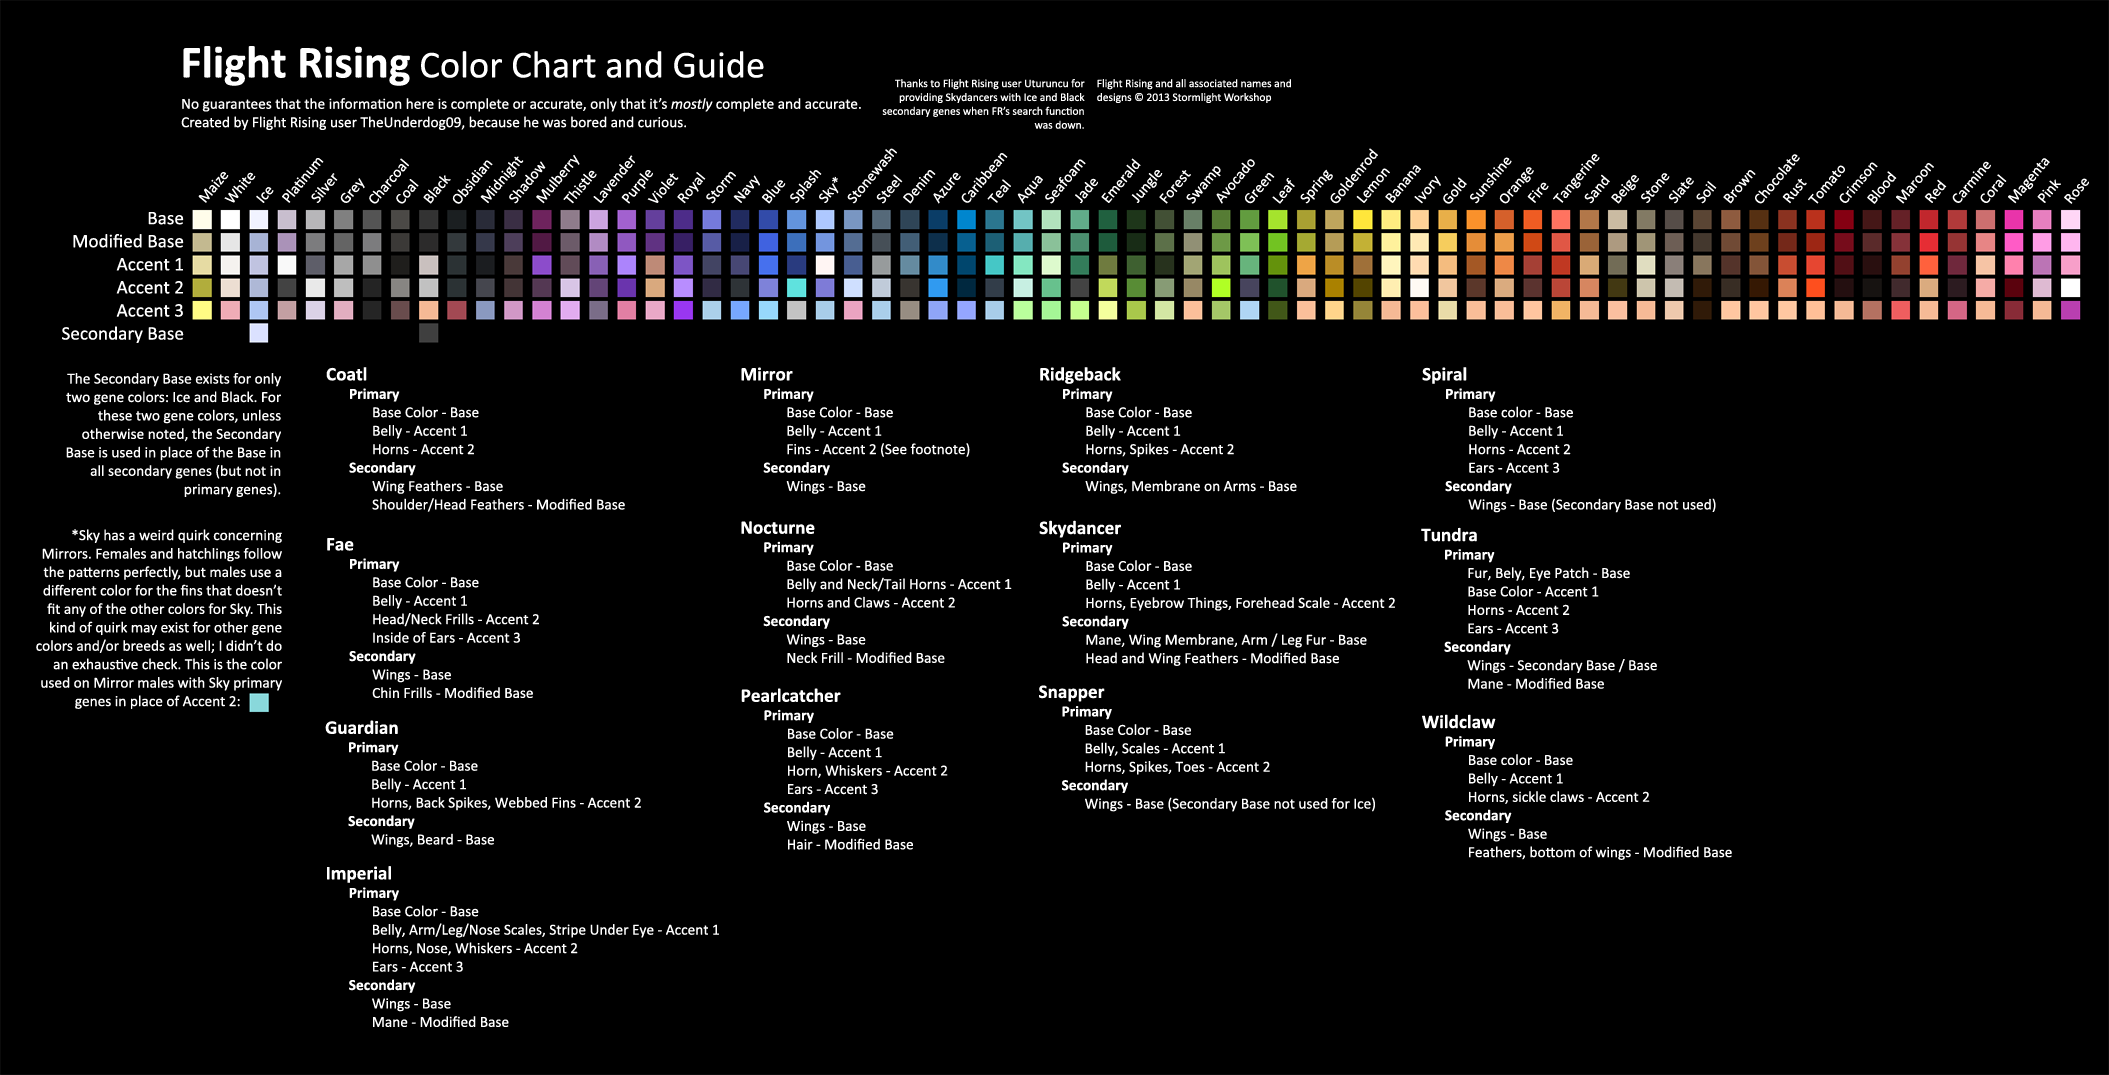 Color chart for Flight Rising